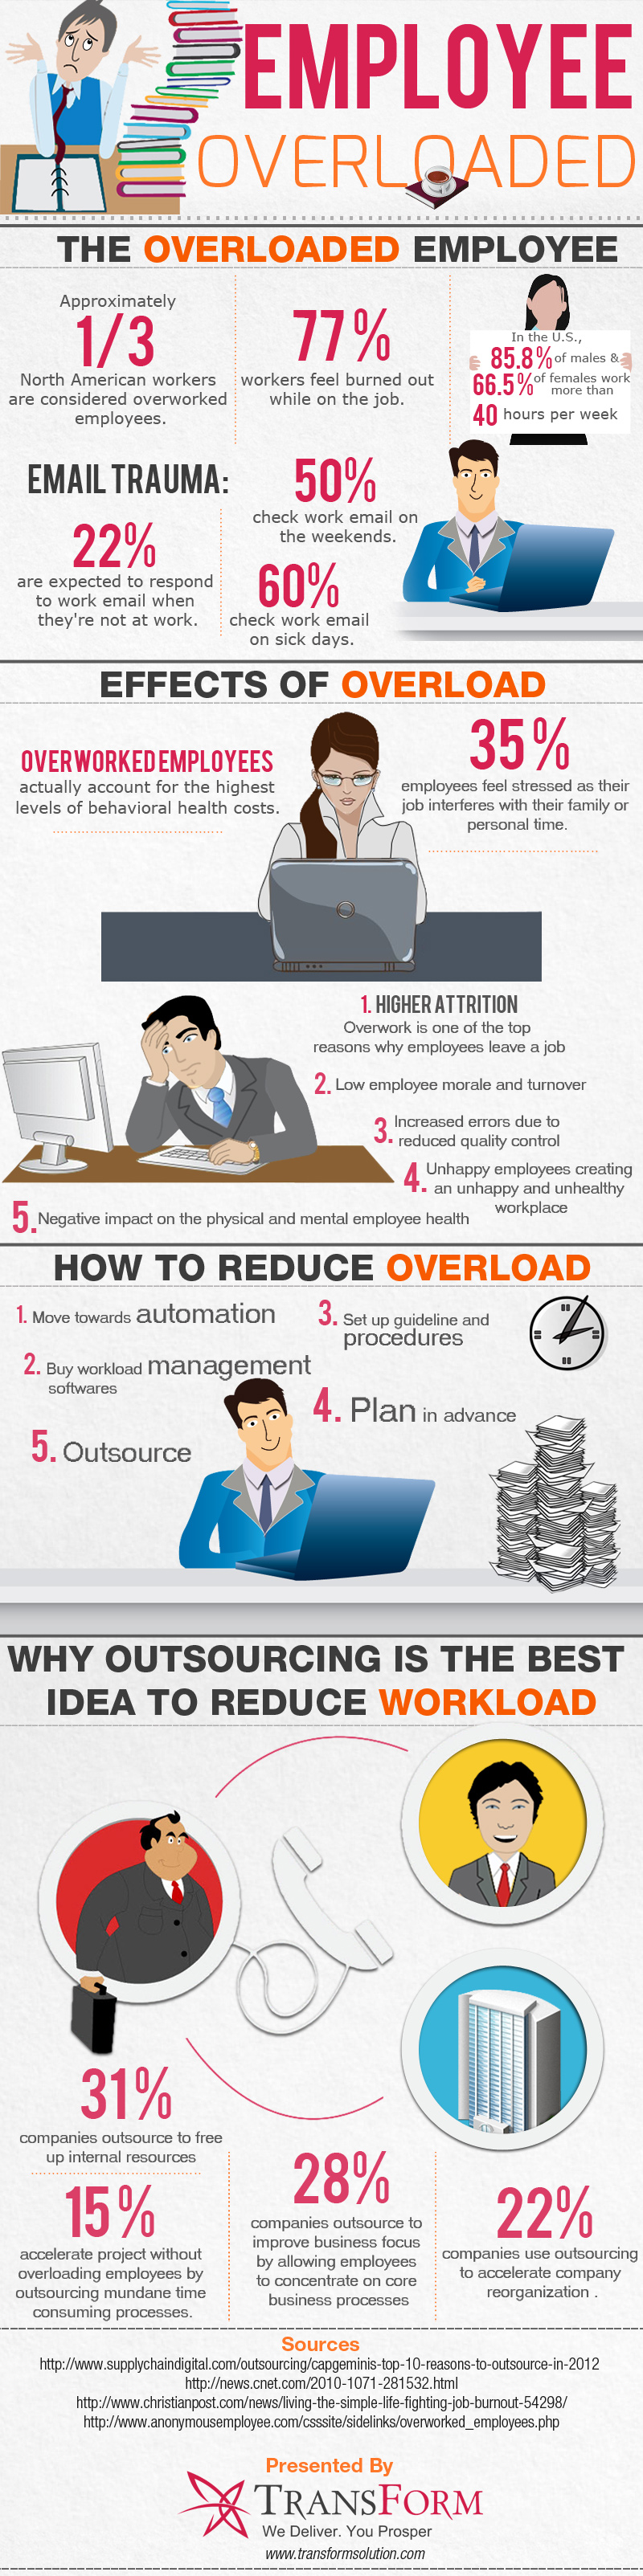 reduce employee burnout infographic